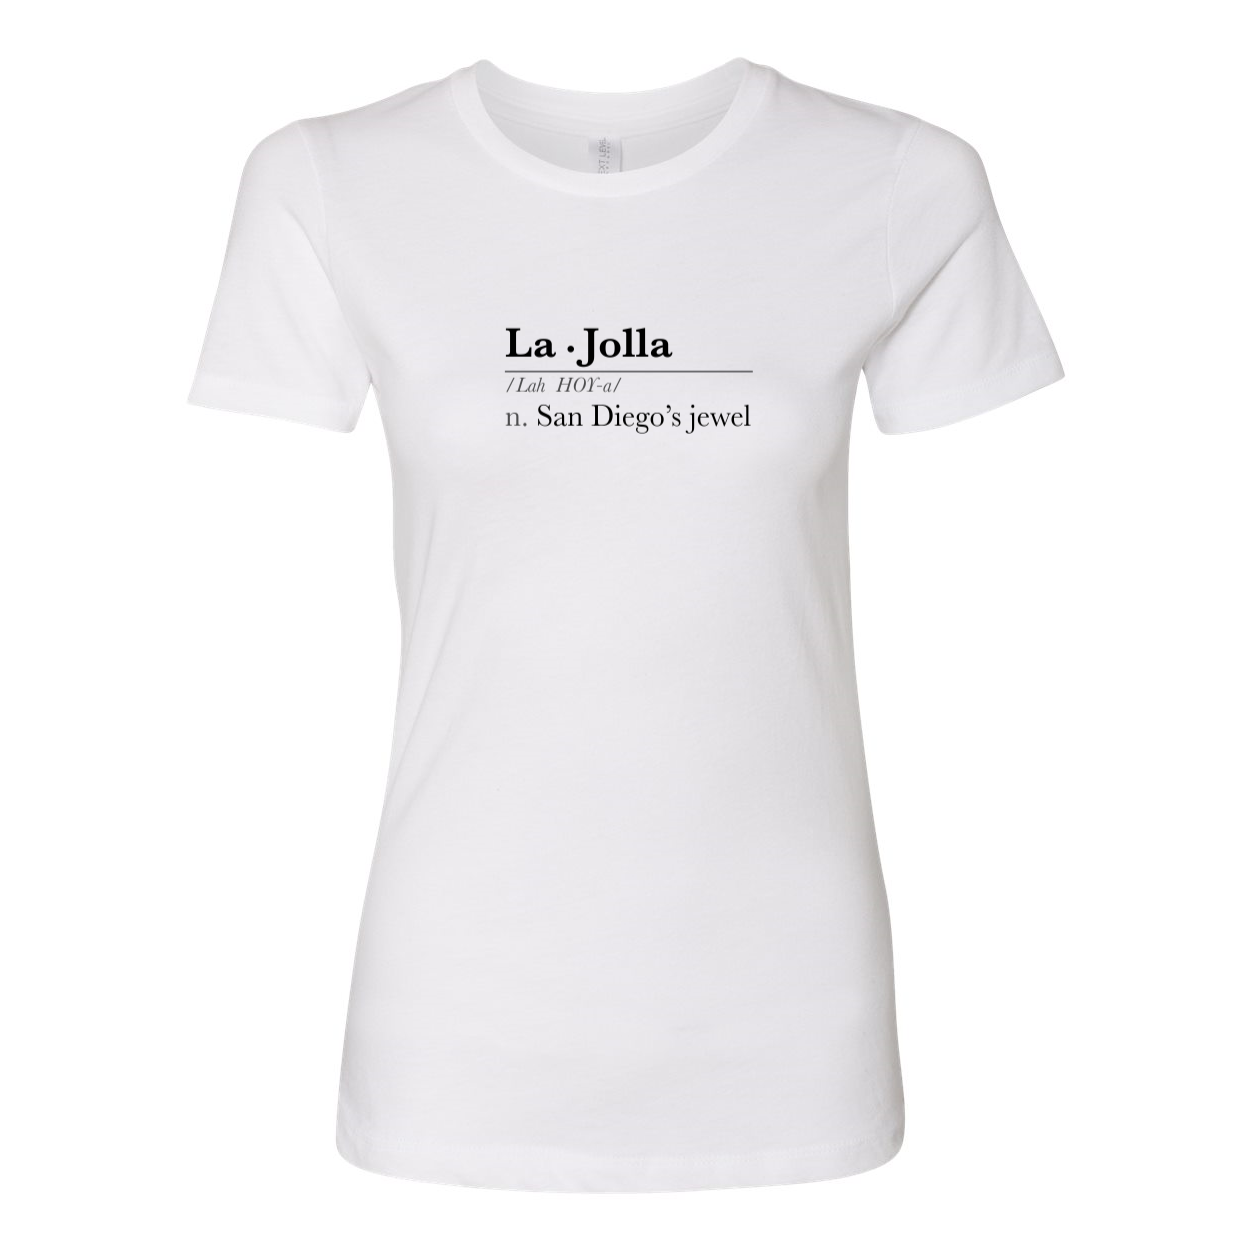 La HOYA - T-Shirt (Women's)